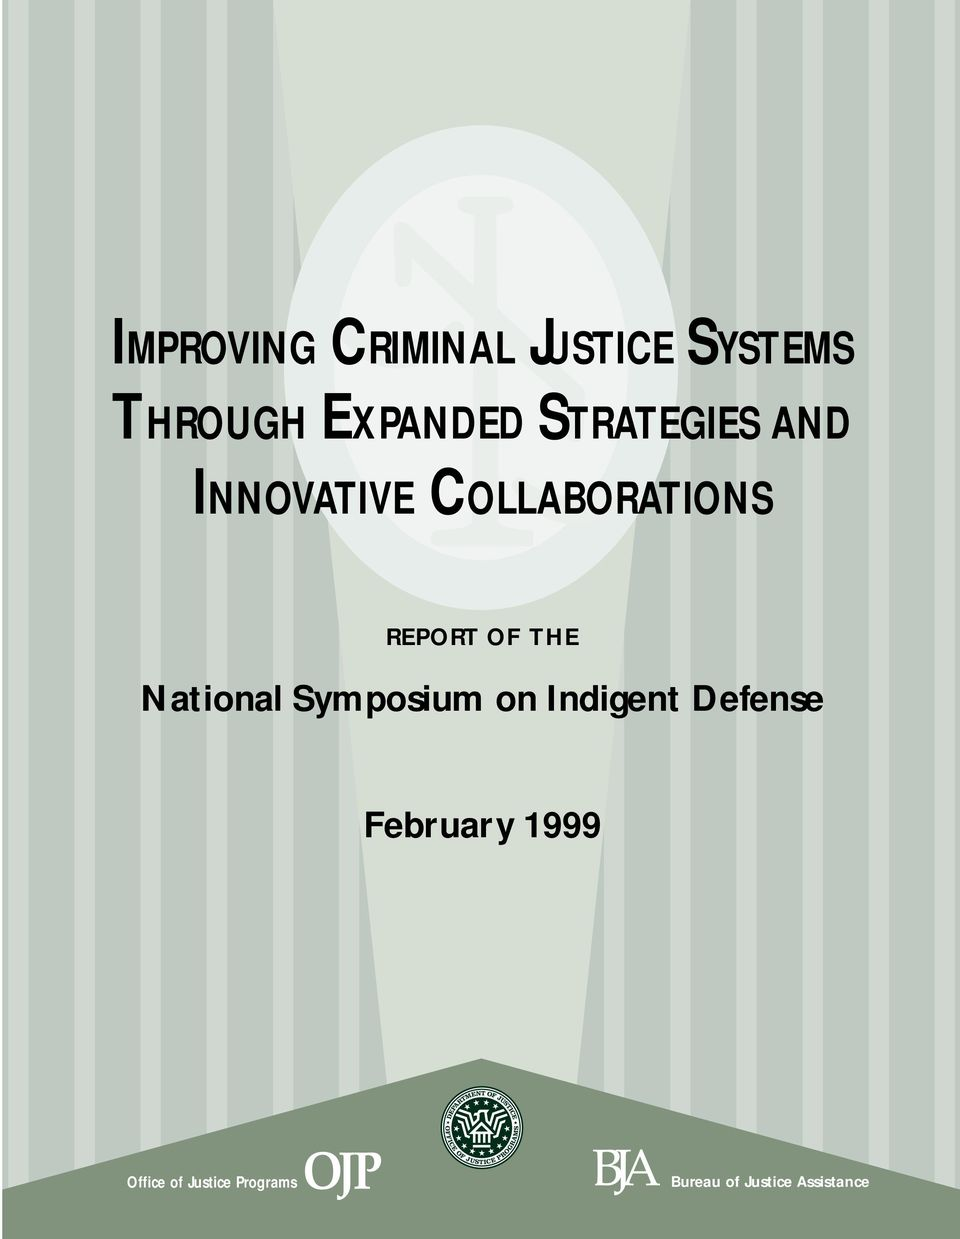 National Symposium on Indigent Defense February 1999